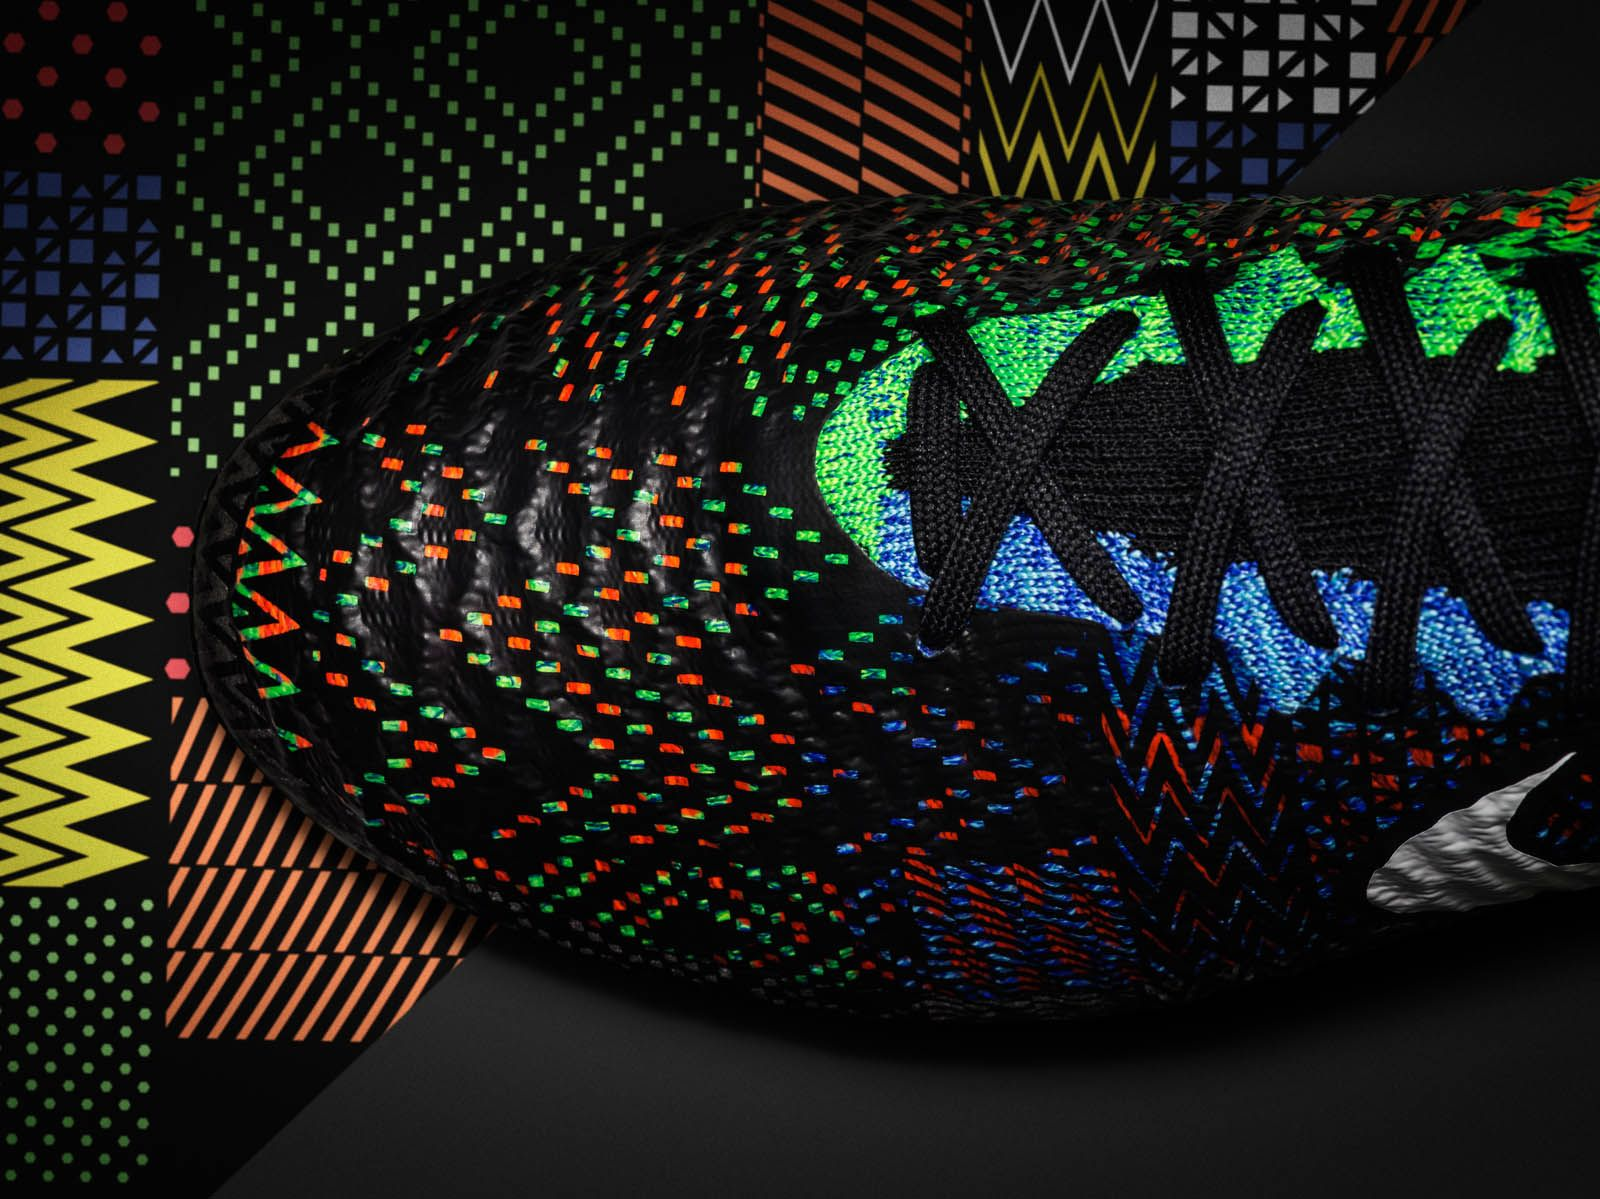 Boot design by nike - The Nike Magista Obra 2016 Black History Month Boot Introduce A Stunning Design Set To